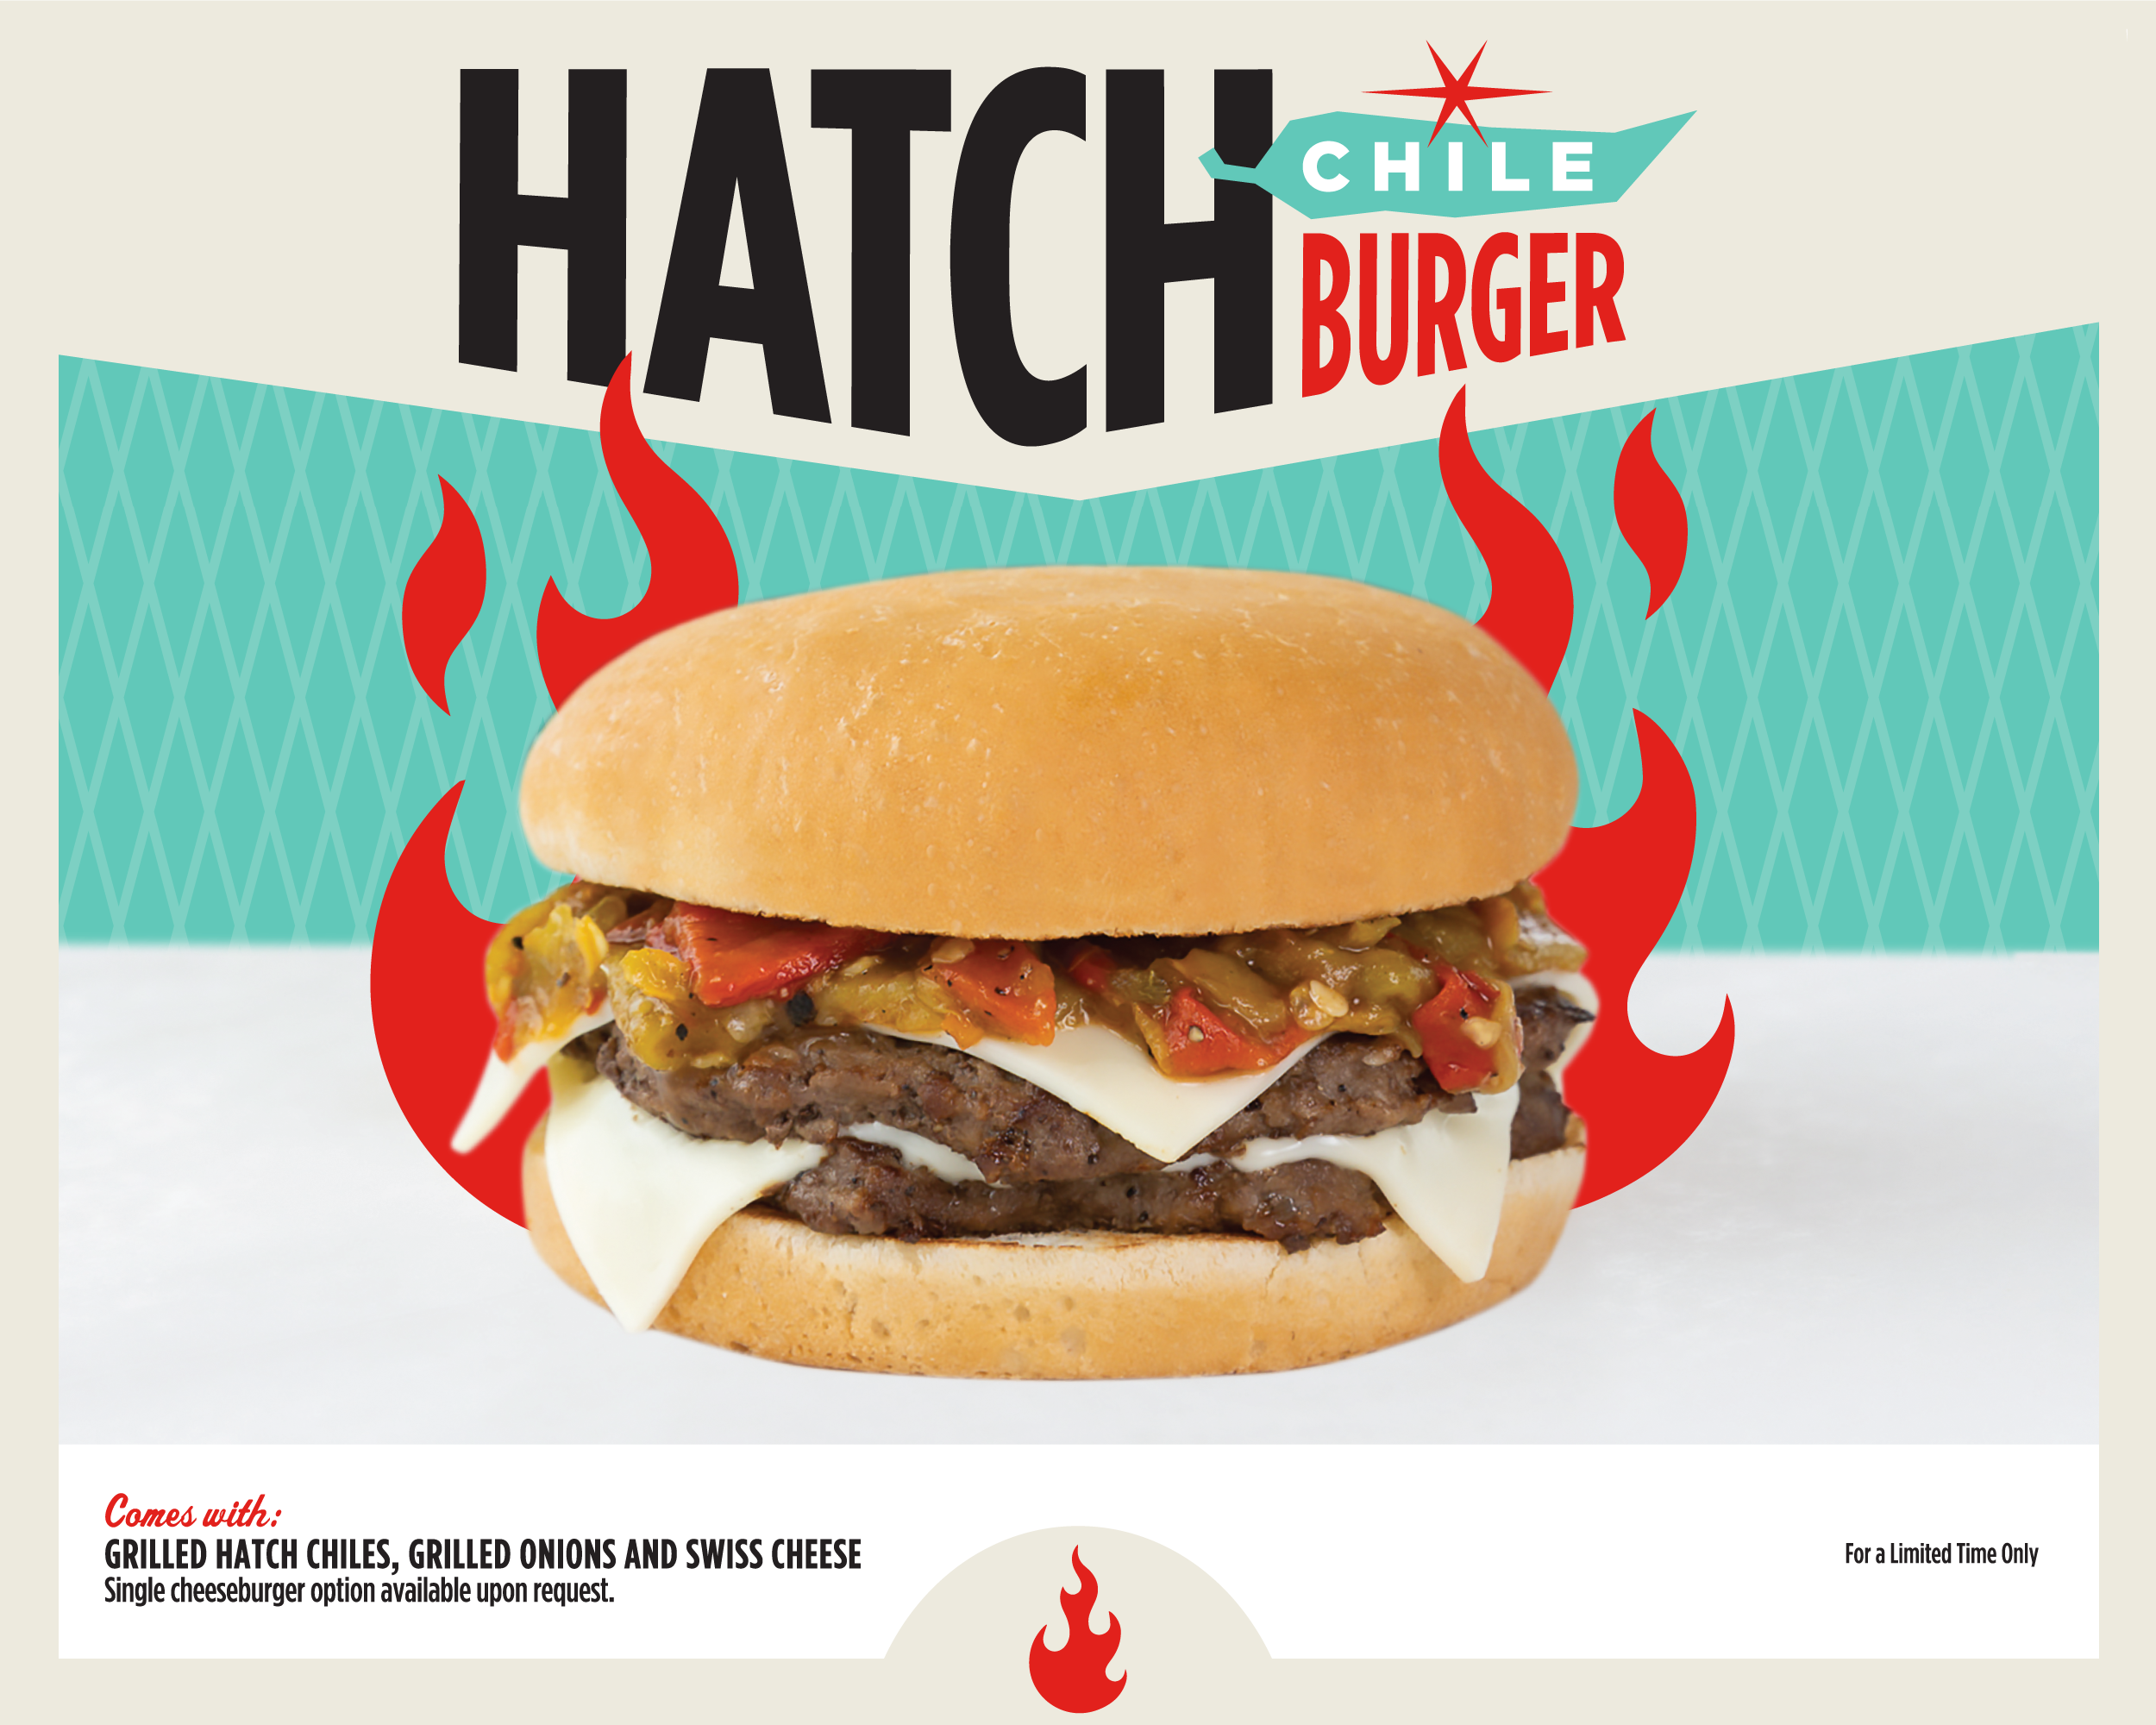 Hatch-Chile-Bacon-Burger-2500x2000.png